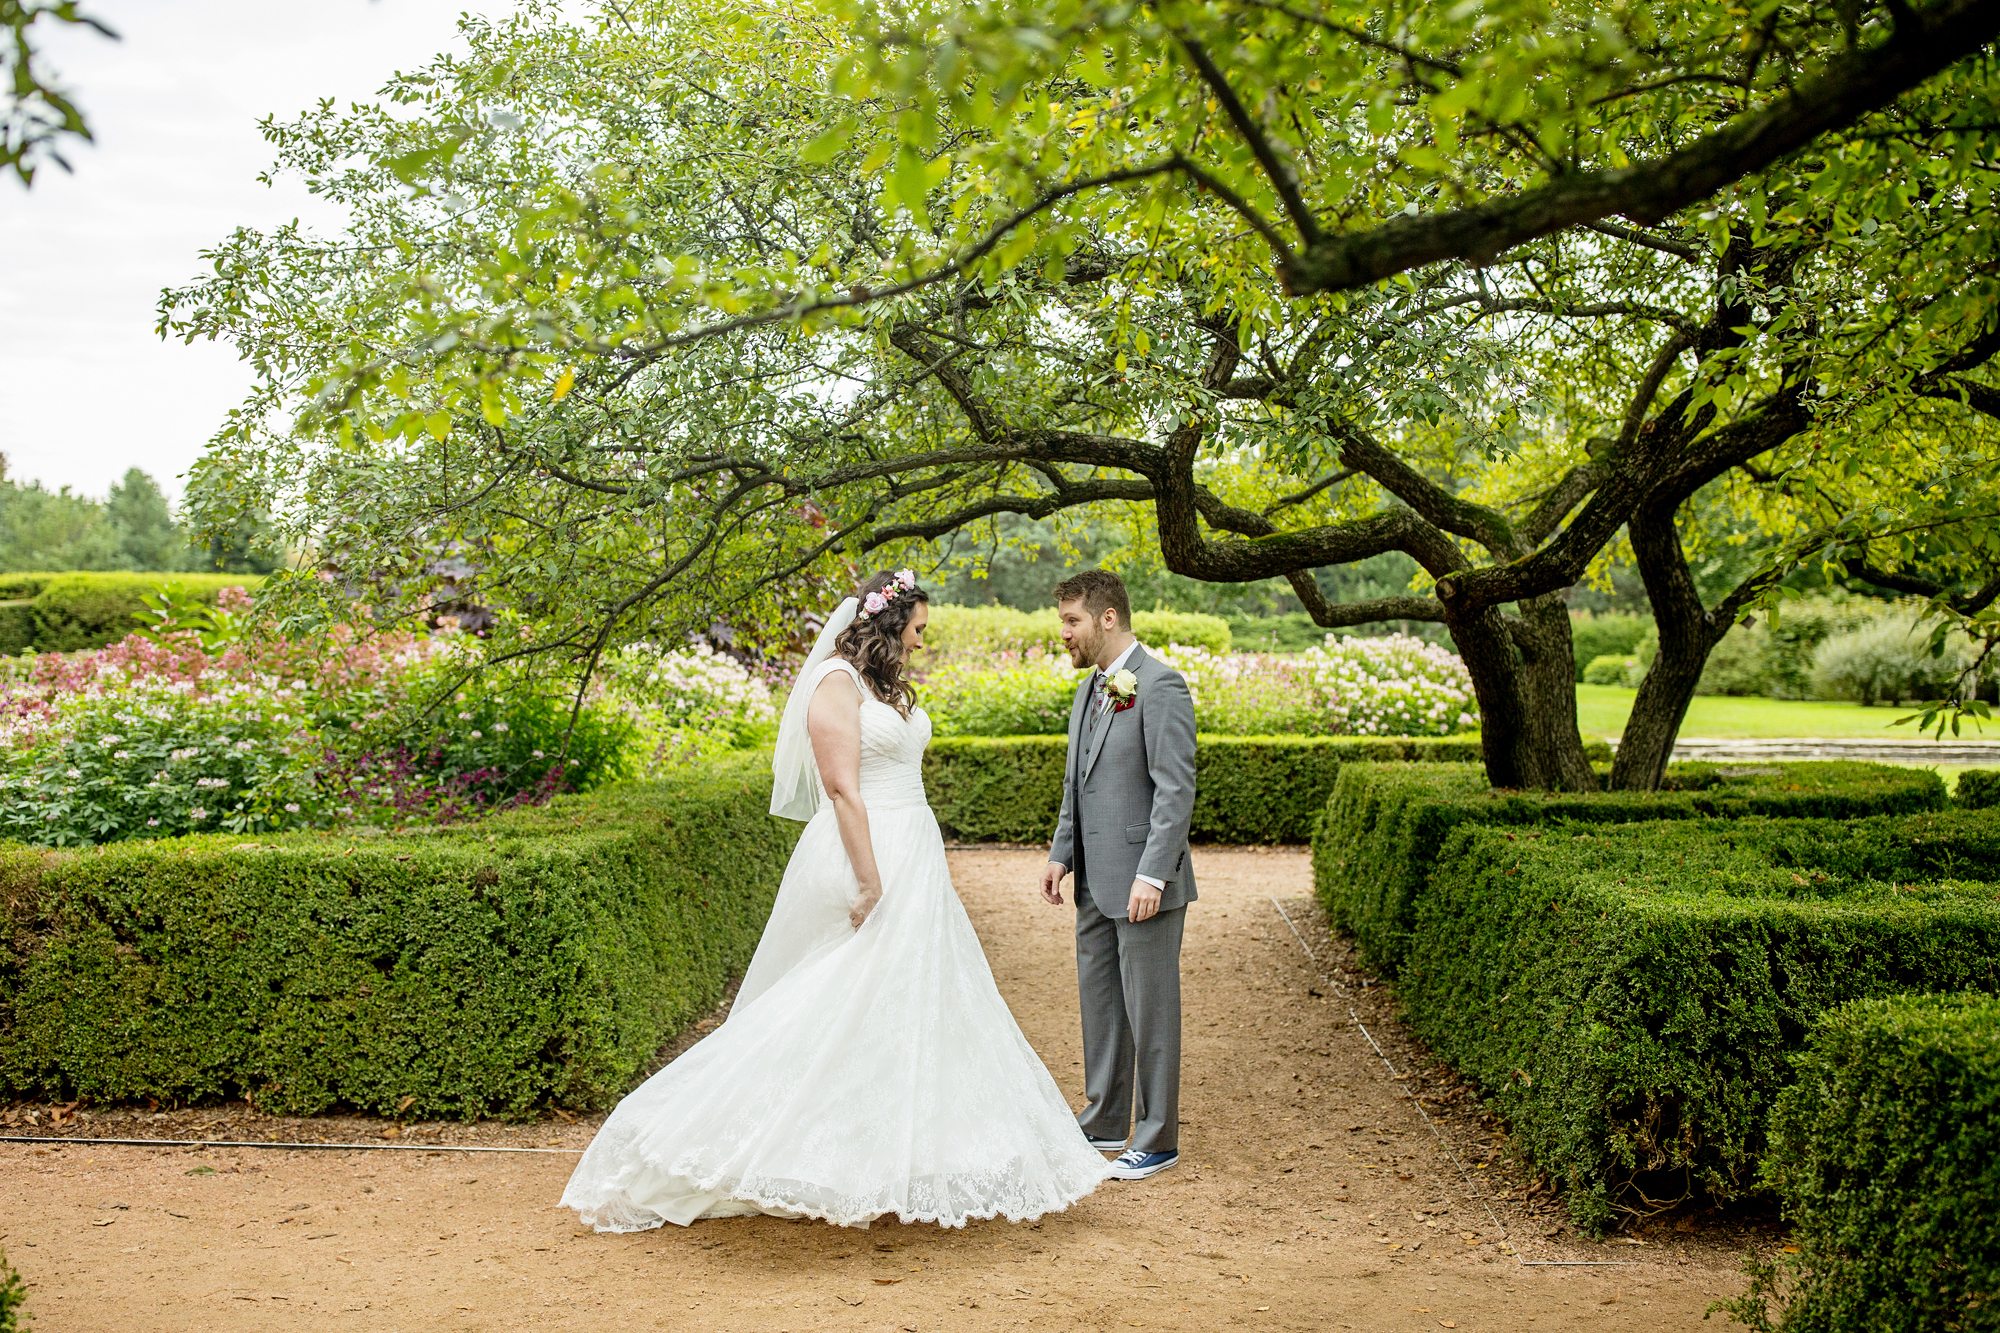 Seriously_Sabrina_Photography_Lisle_Illinois_Morton_Arboretum_Wedding_Day_Gowen28.jpg